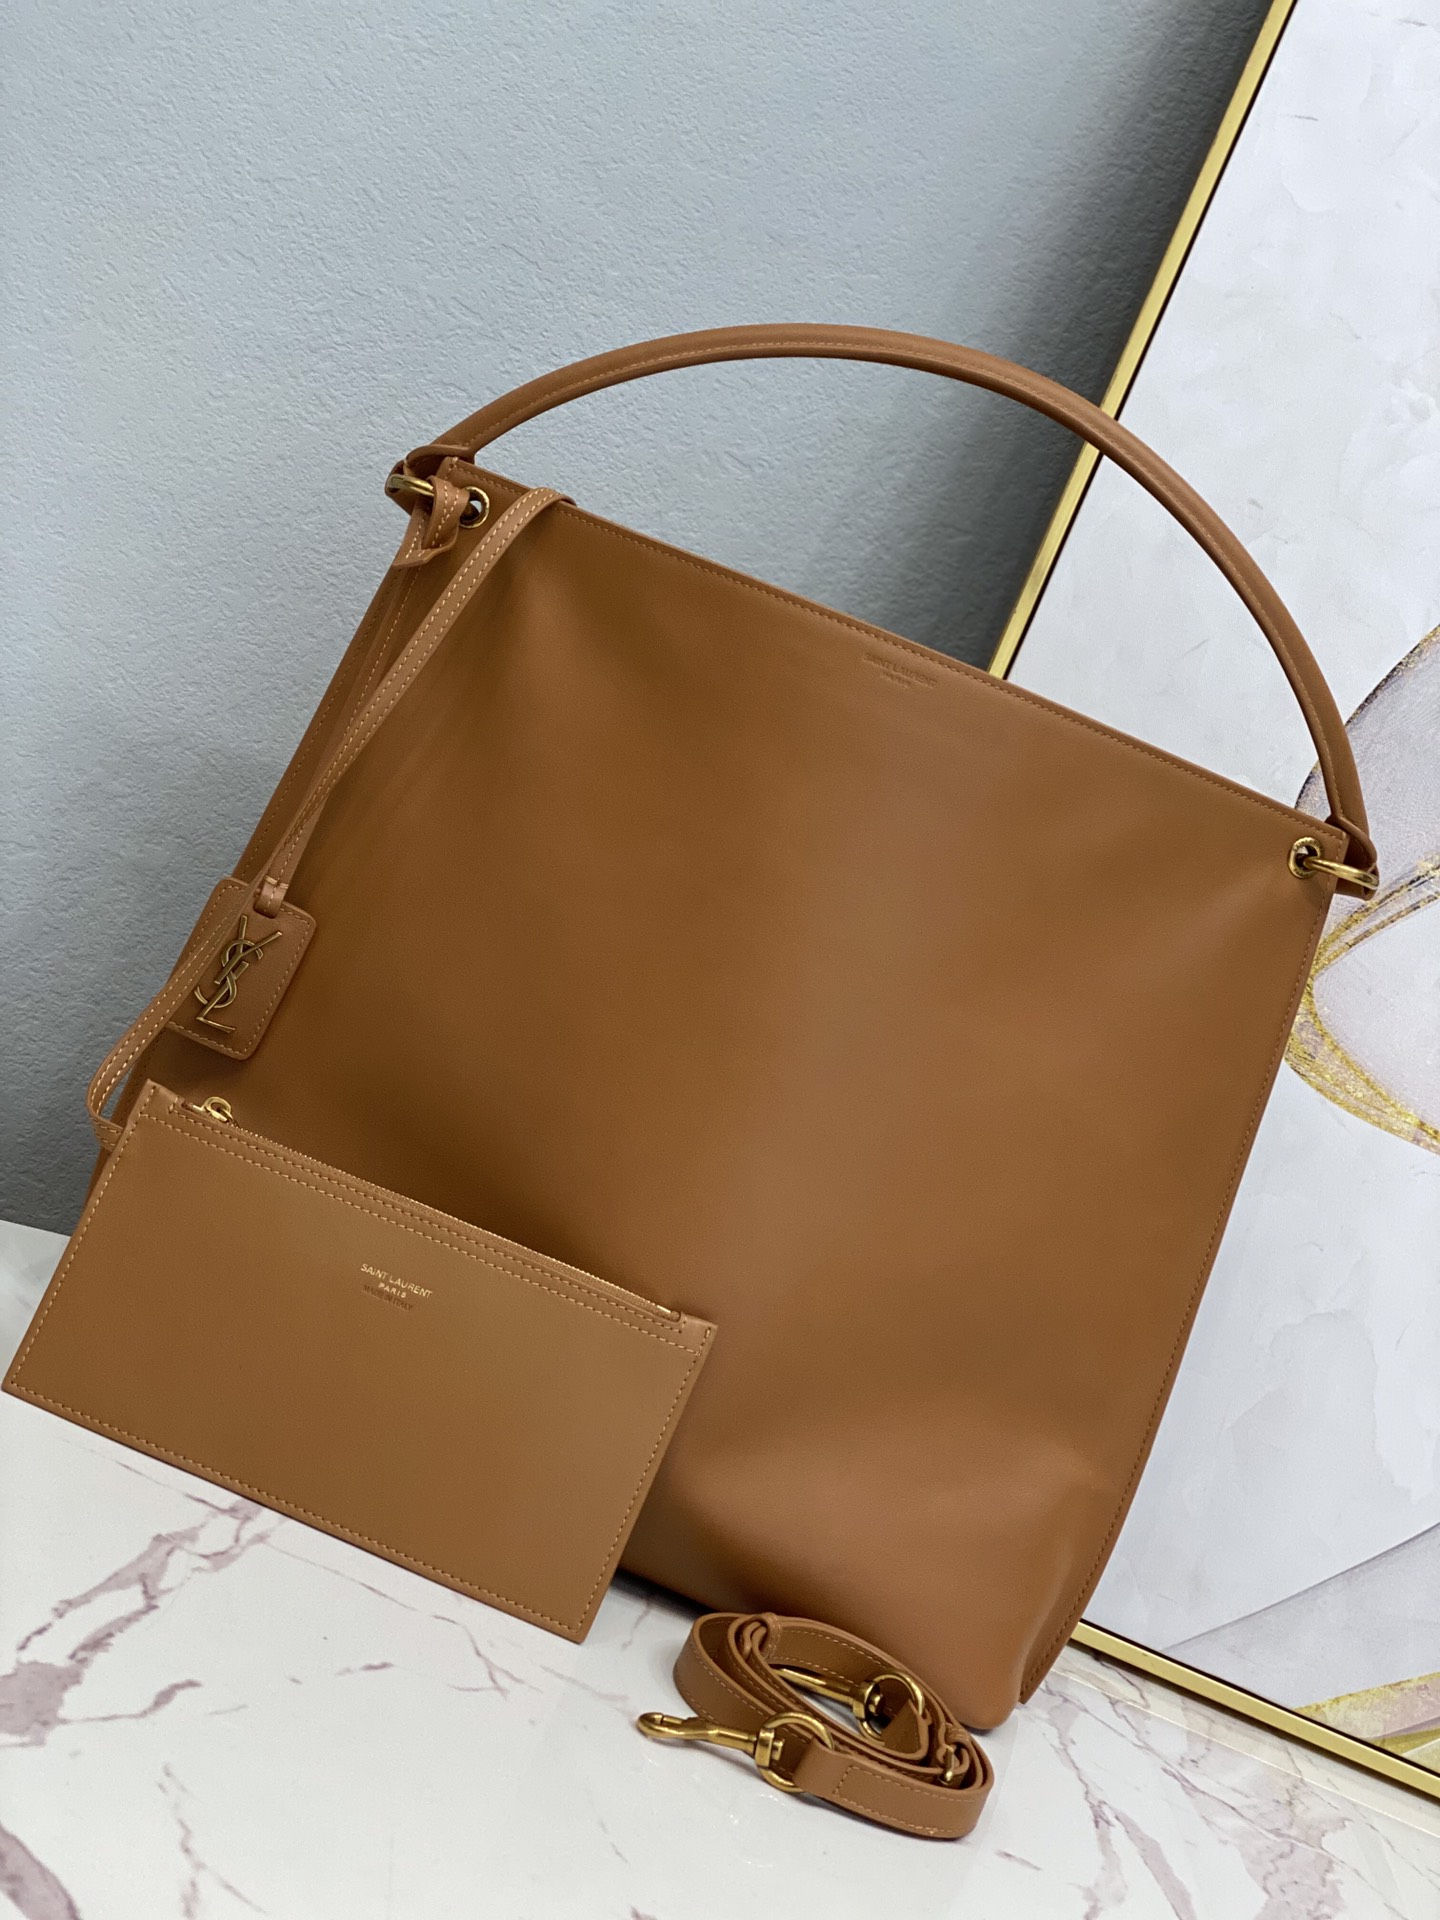 2020 cheap Saint Laurent tag hobo bag in smooth saddle leather BROWN